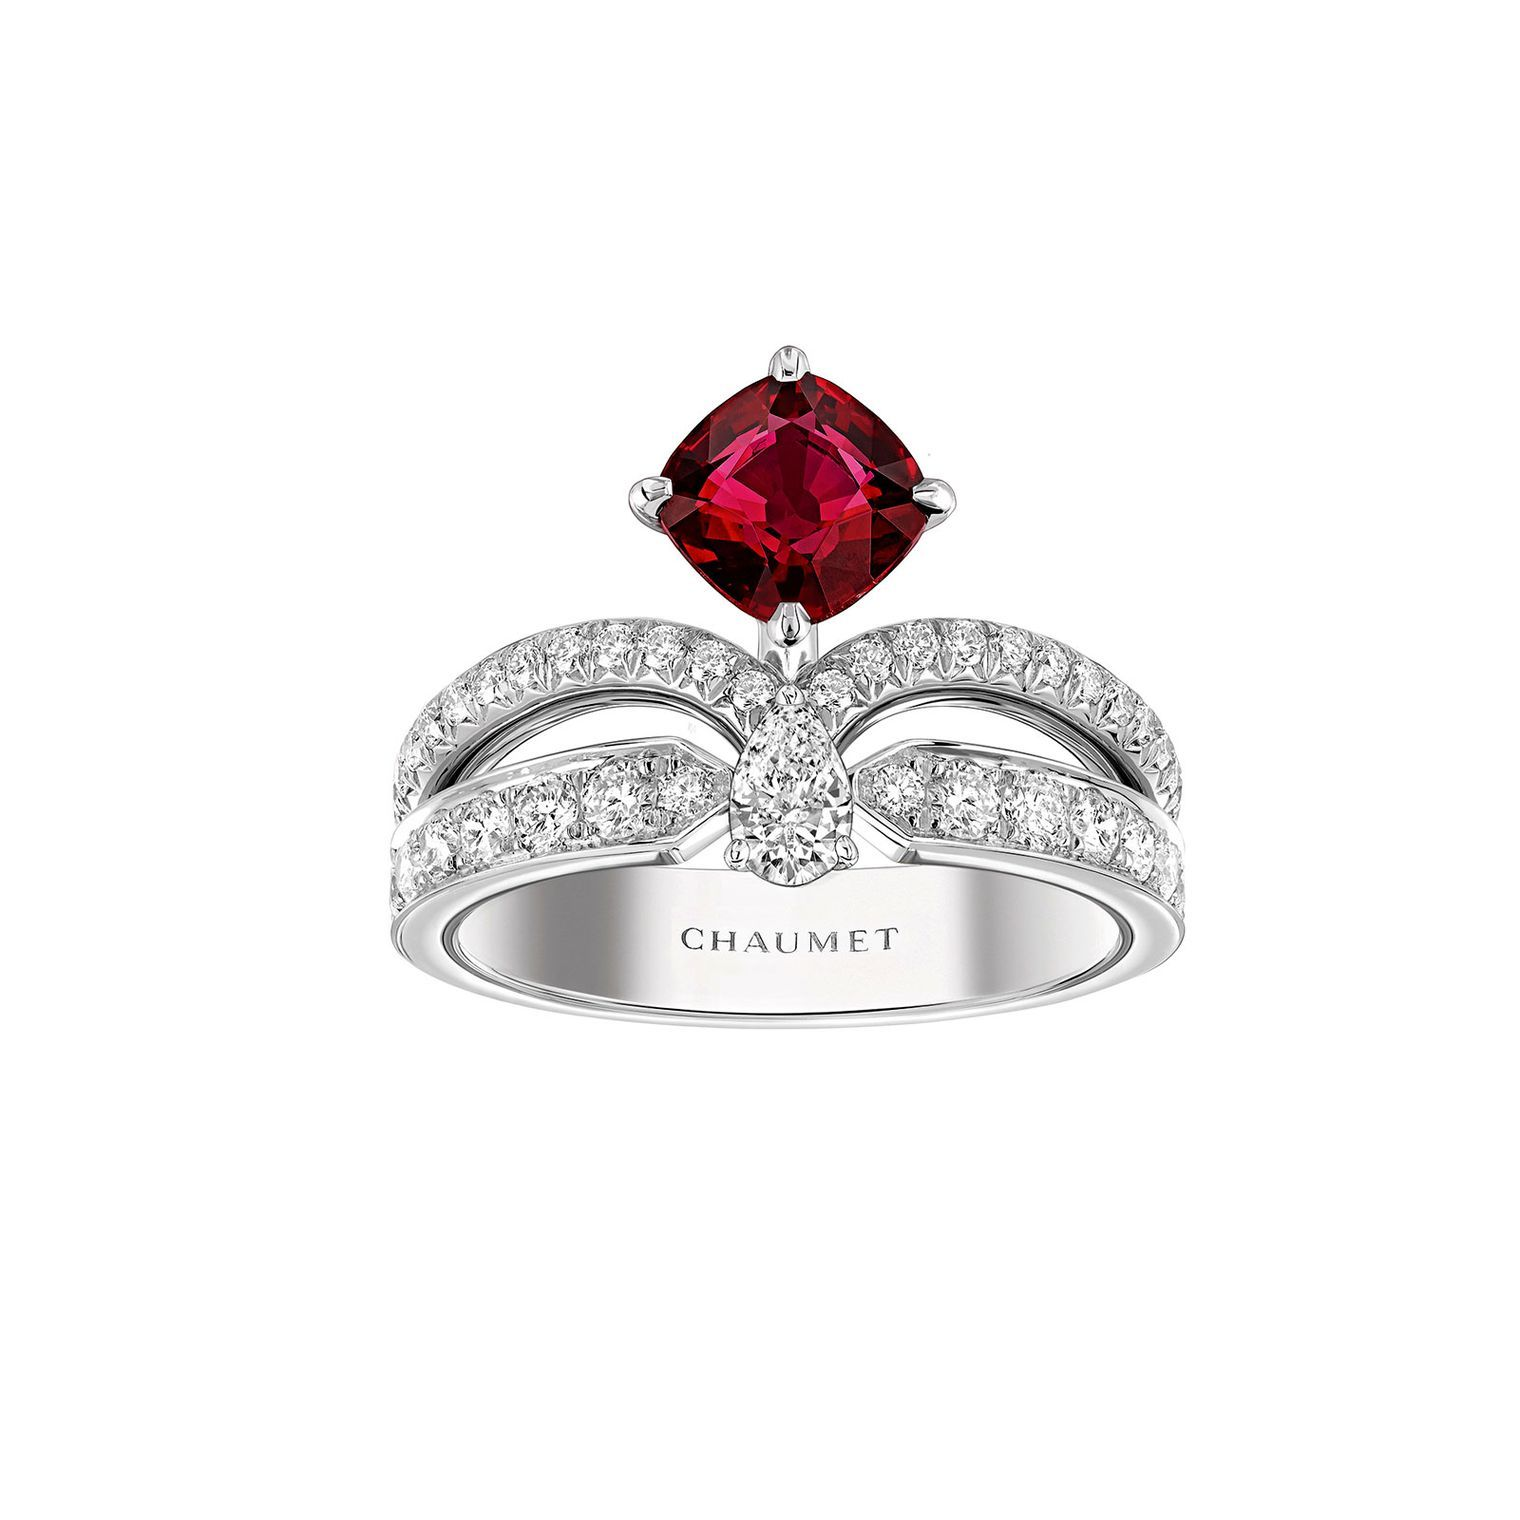 Three Chaumet Josephine Rings To Fall In Love With Colored